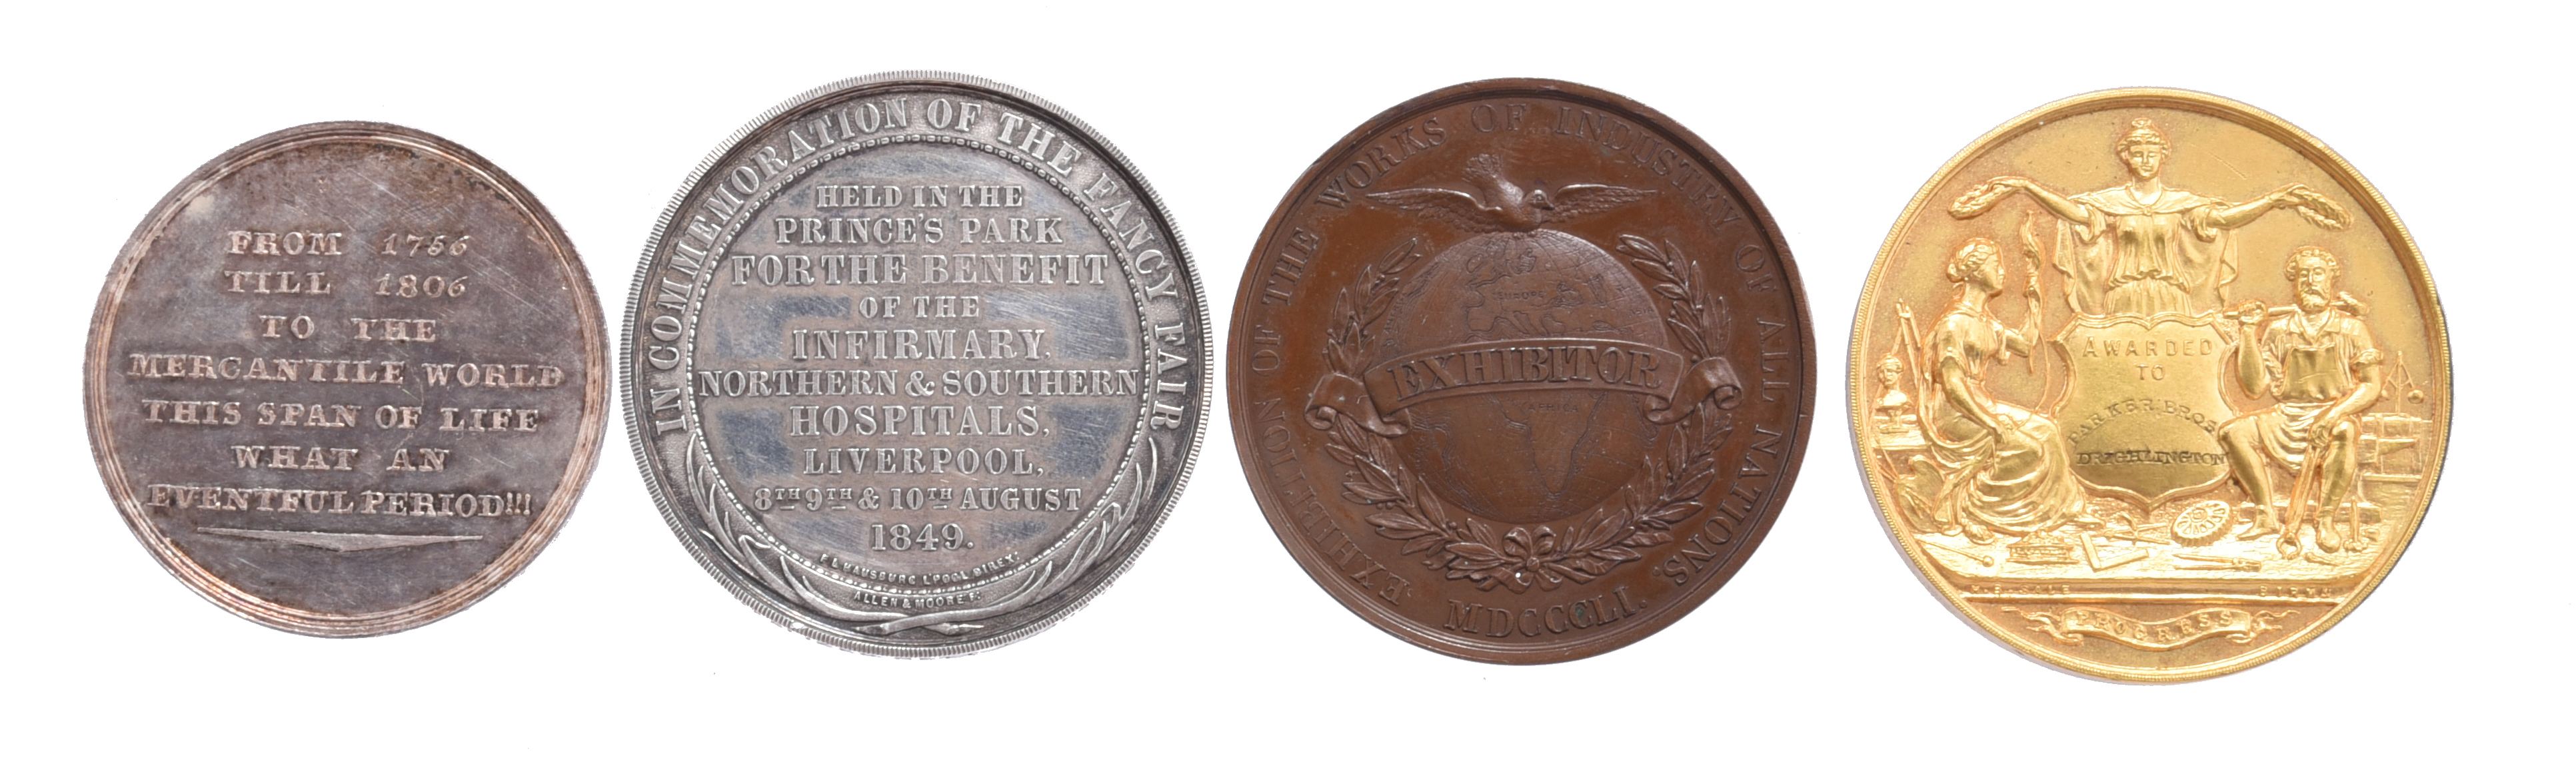 Commerce and Industry: four medals: John Parish, Hamburg 1806, silver, 39mm, 'FROM 1756 TILL 1806 TO - Image 2 of 2